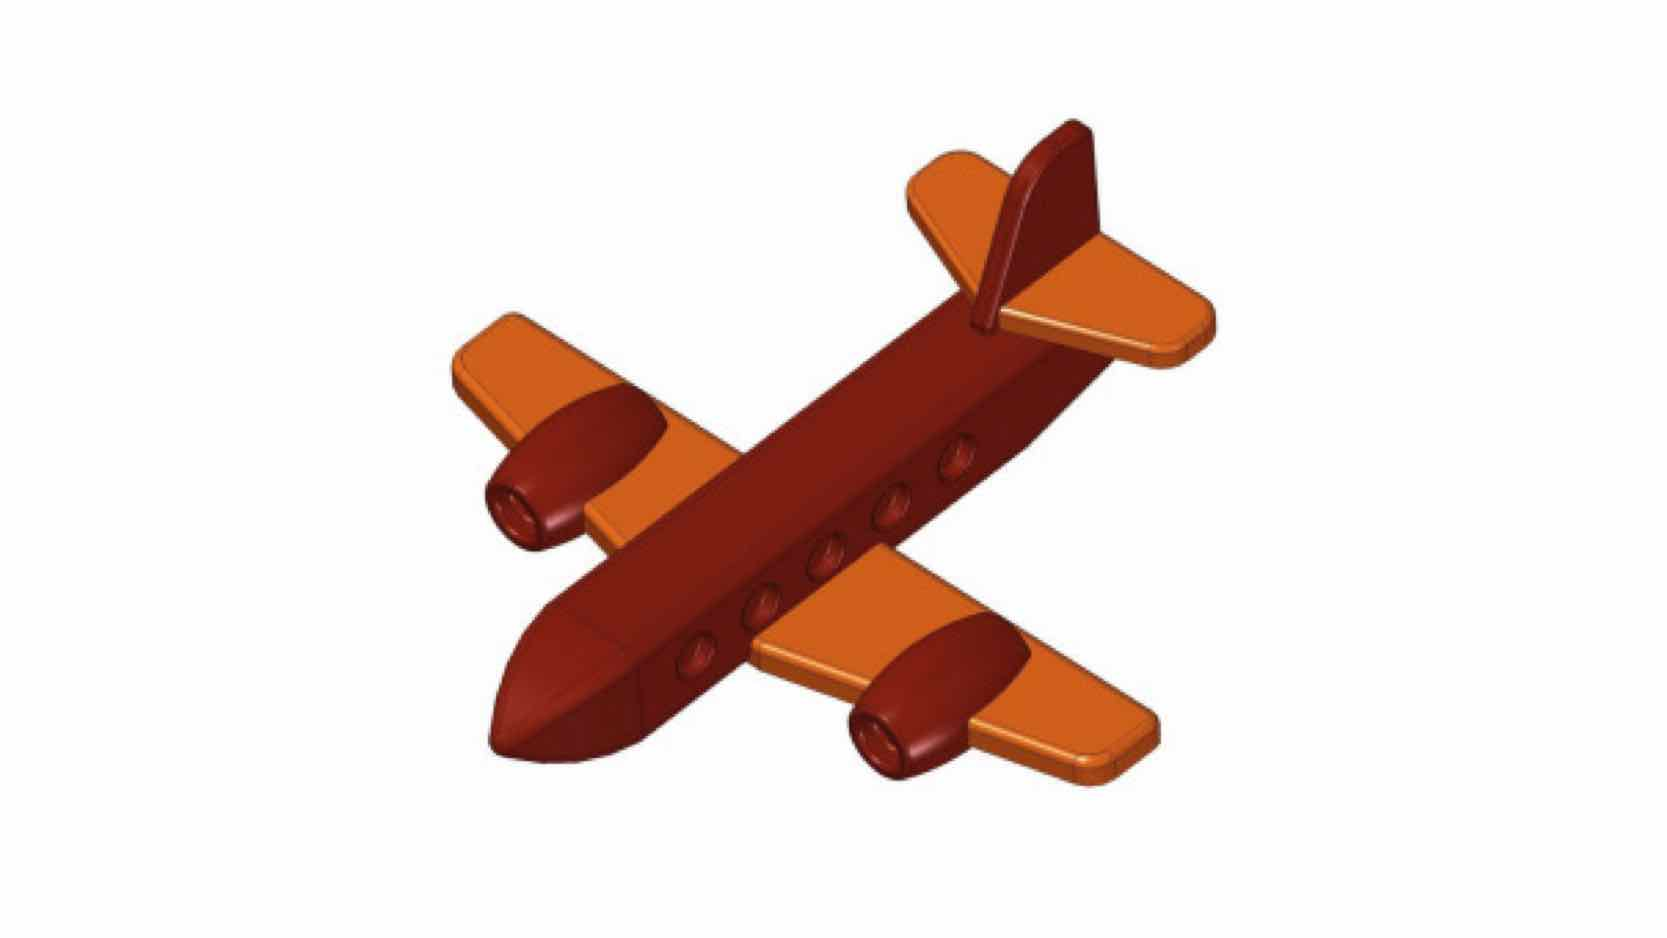 Free Wooden Airplane Toy Plans